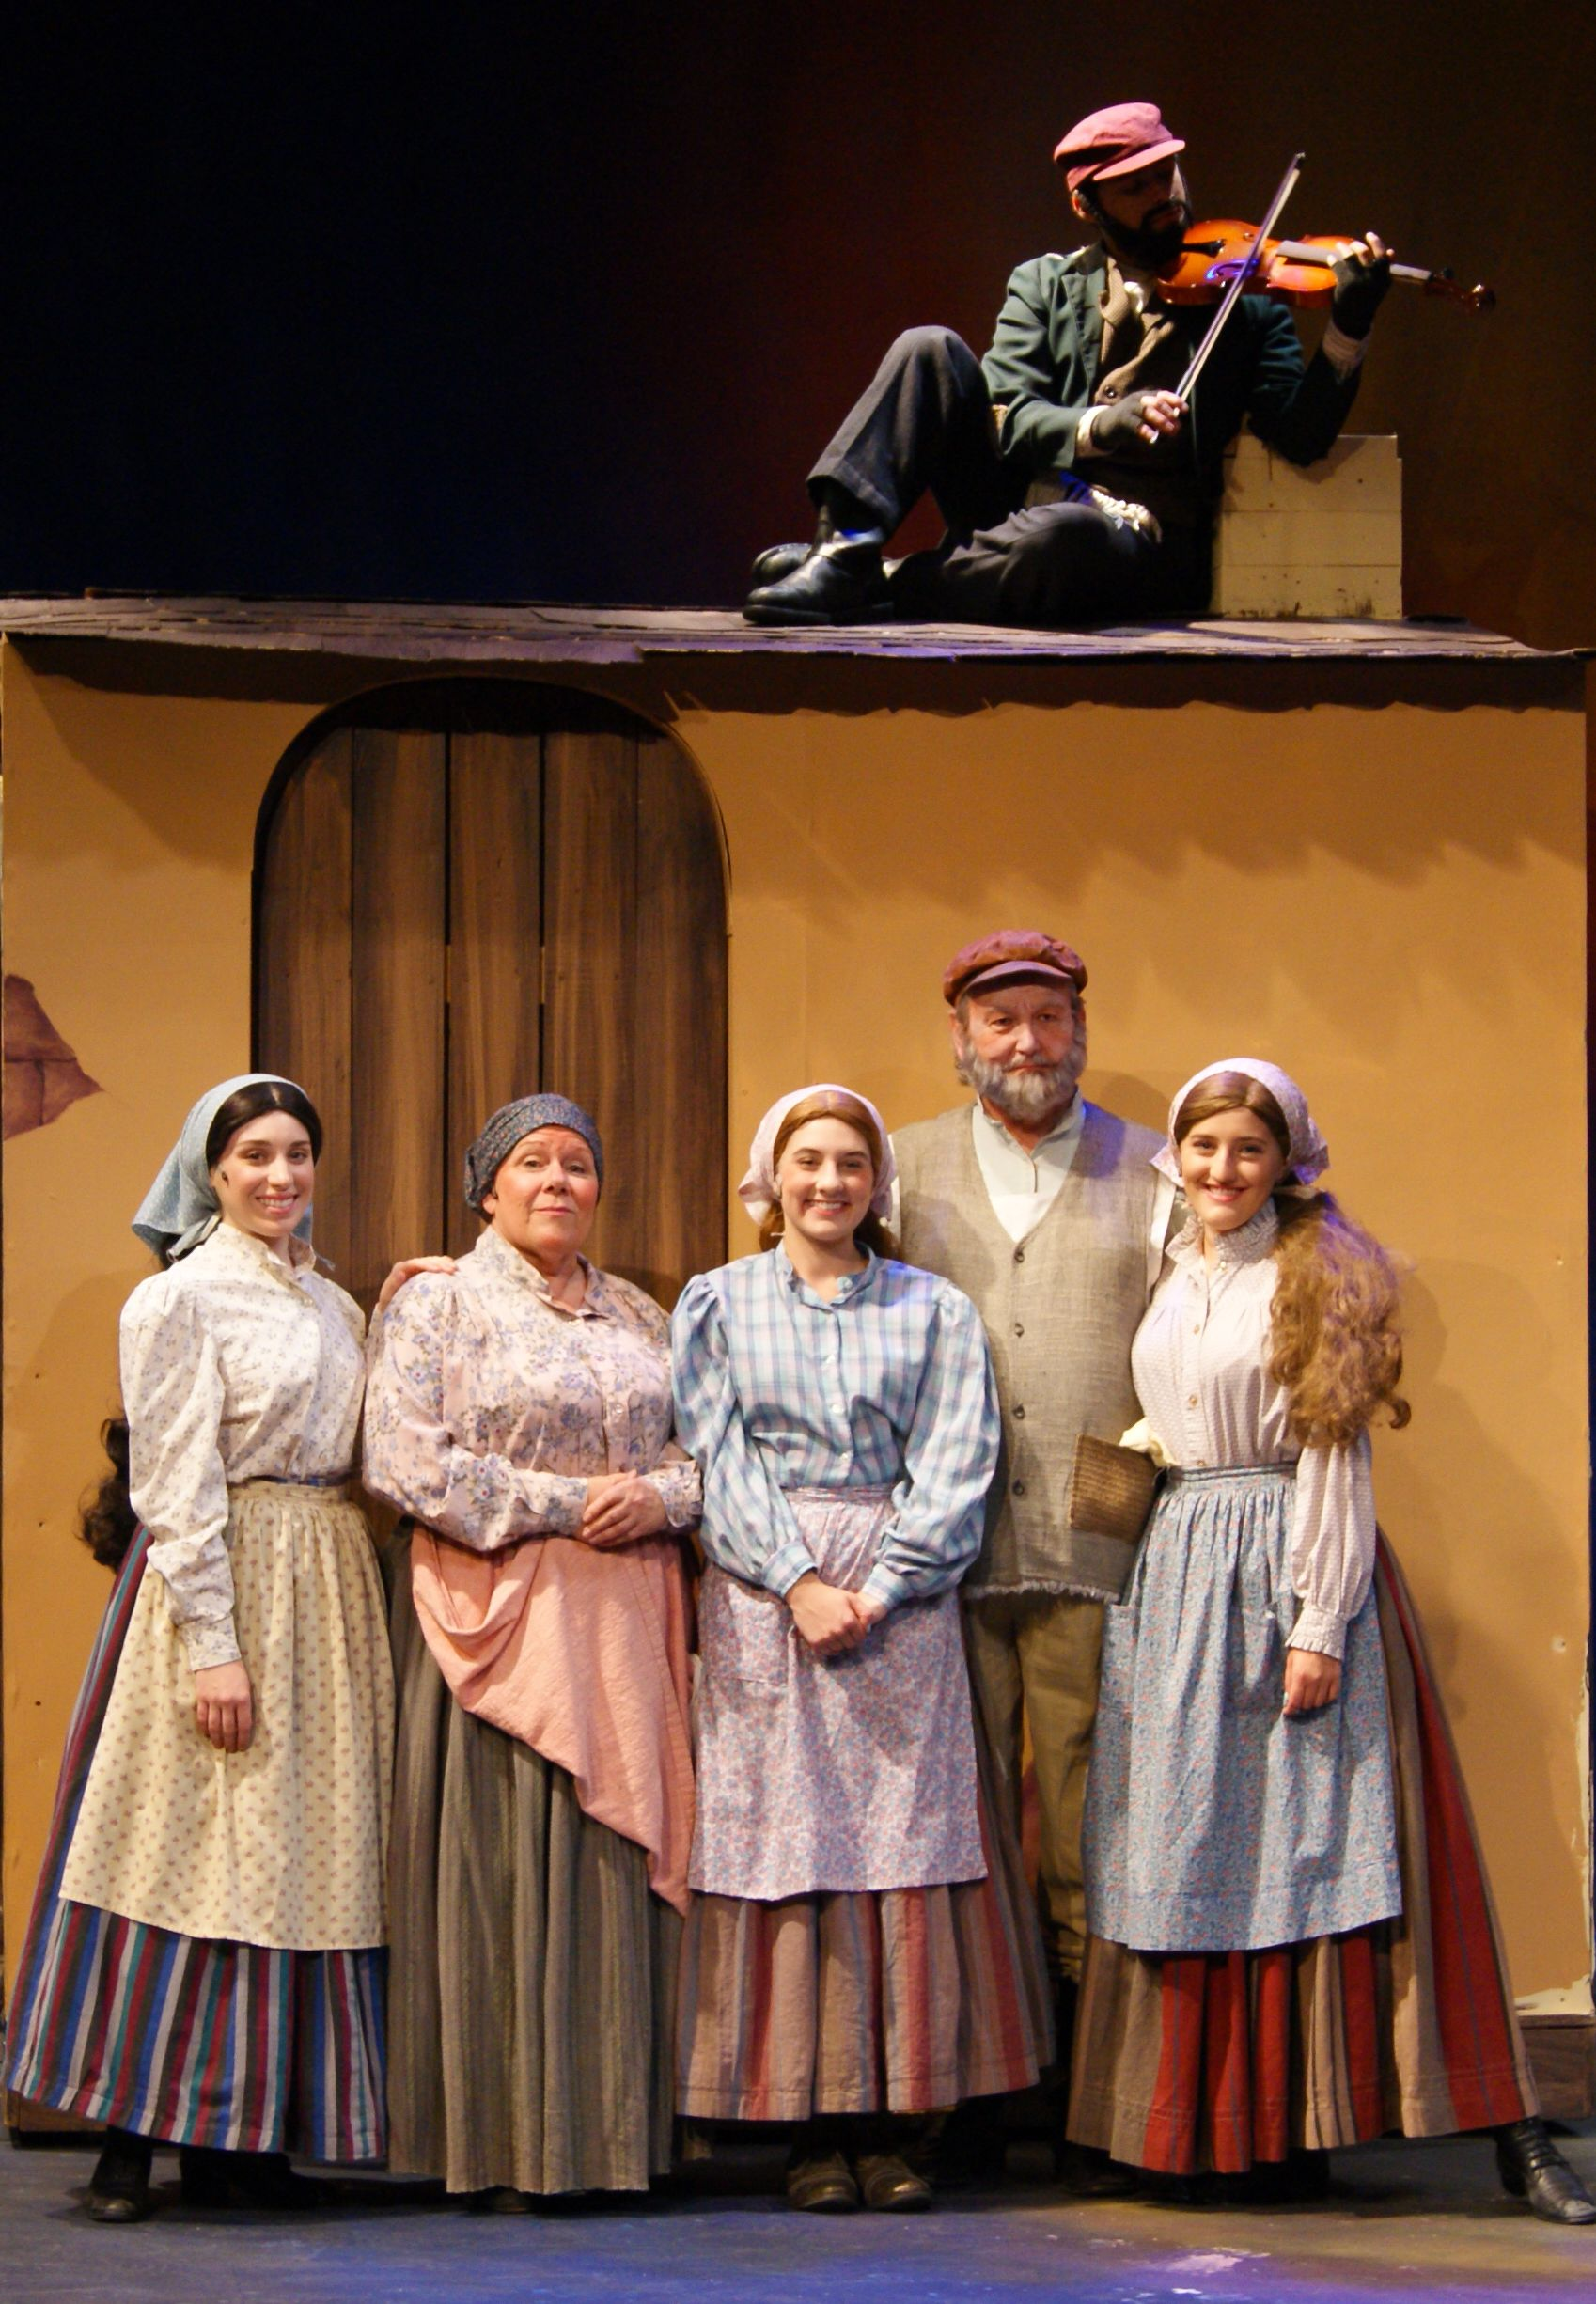 Pin By Encore Dinner Theatre On Fiddler On The Roof Fiddler On The Roof Fiddler Musical Theatre Costumes